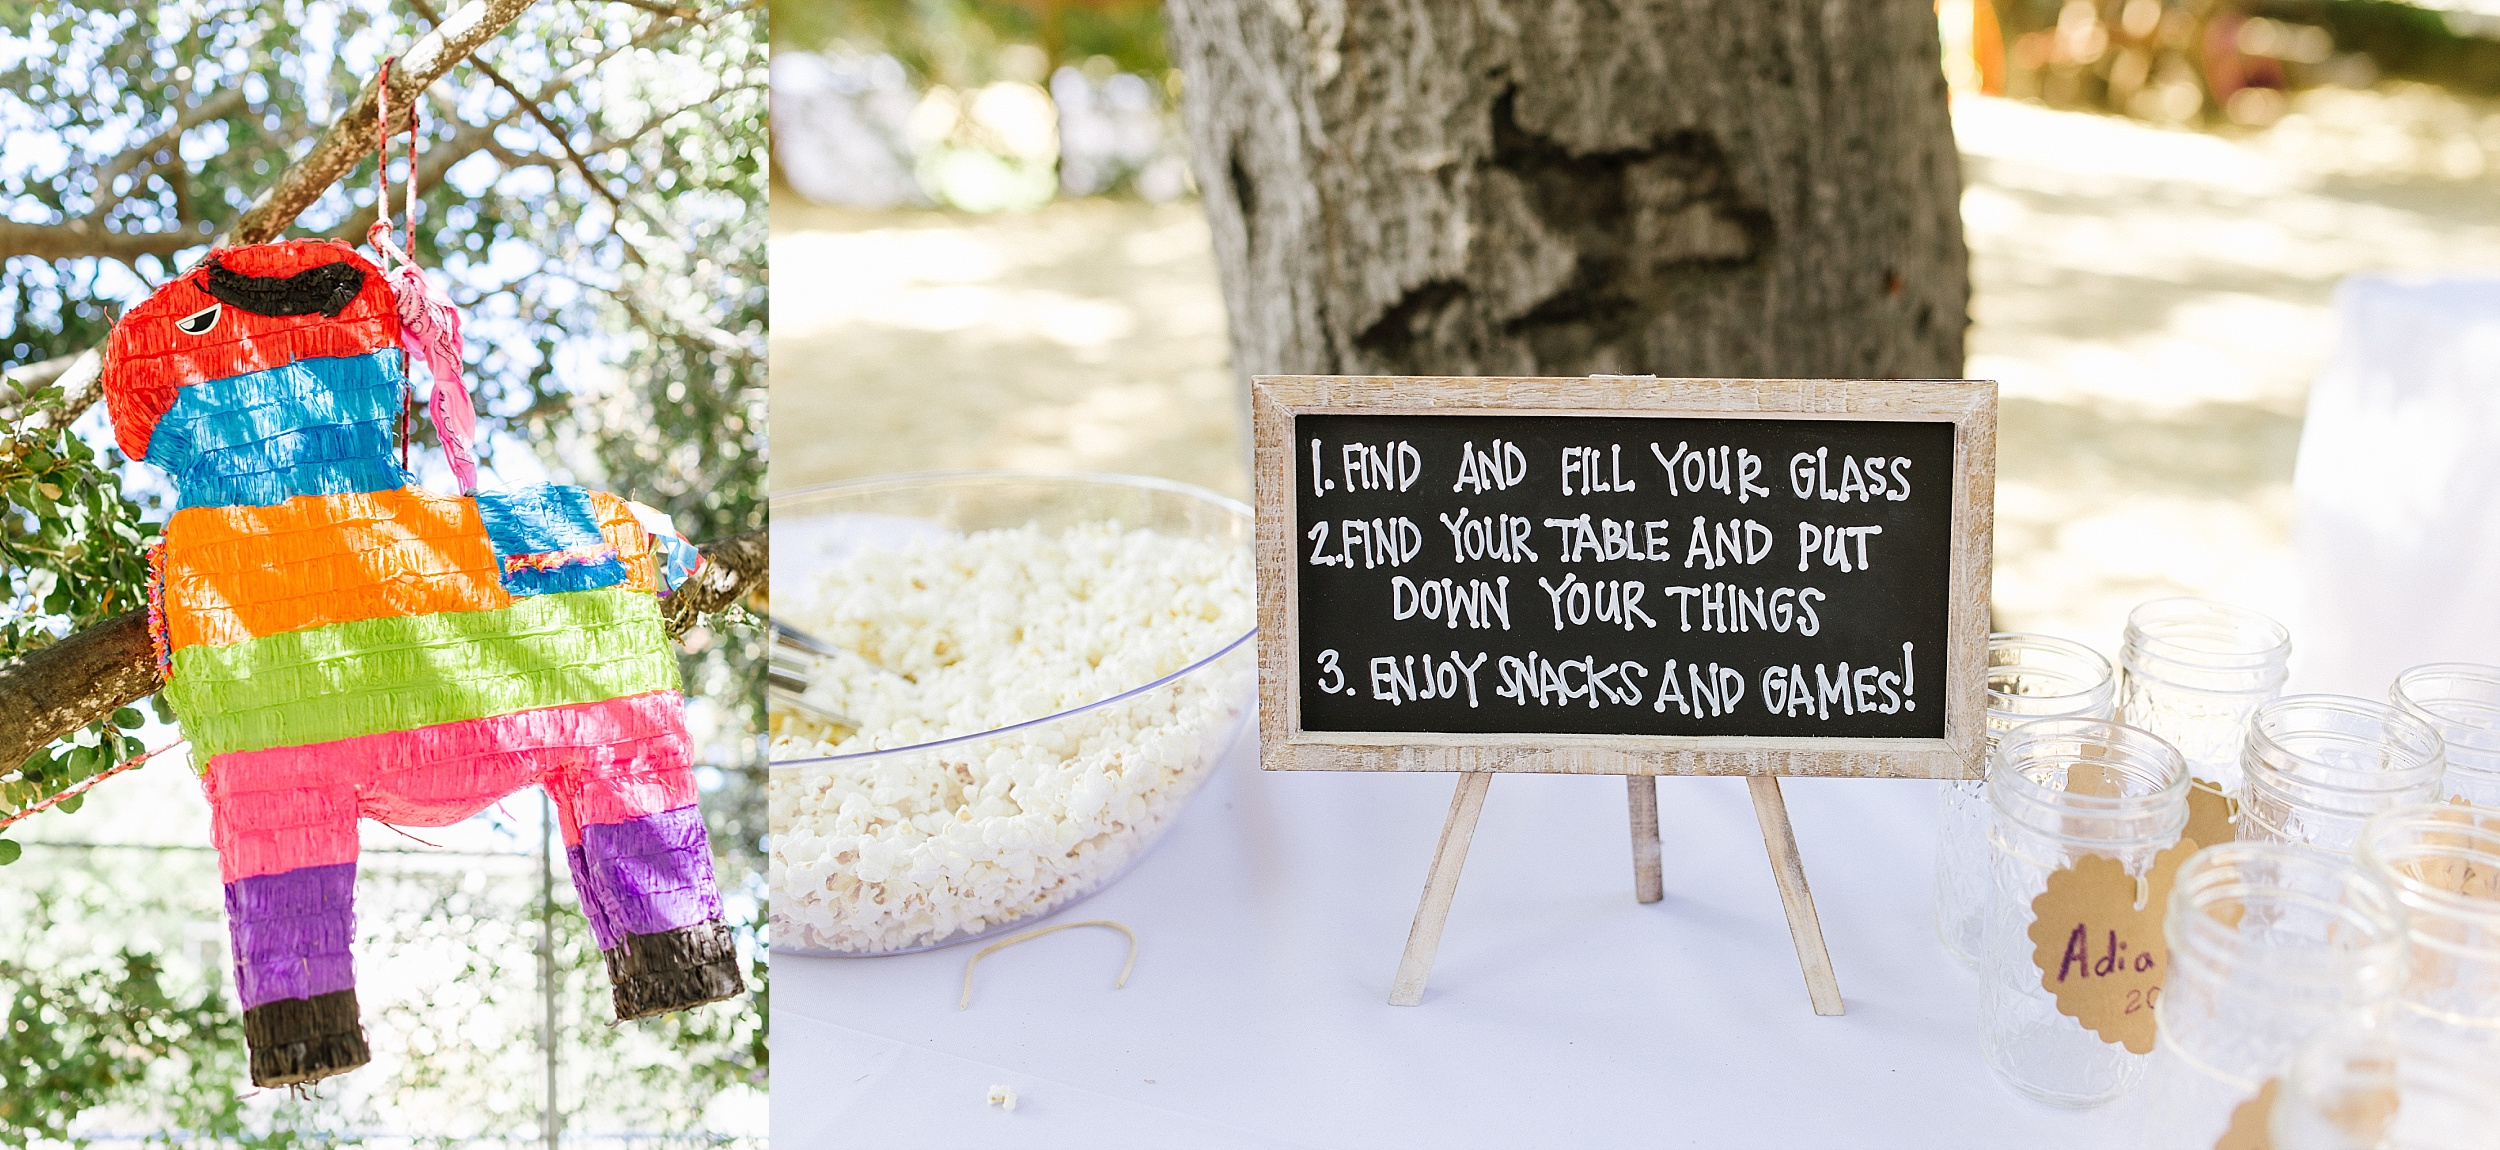 ucberkeley_botanical_redwoods_outdoor_wedding_jennyrez_cdp_0021.jpg